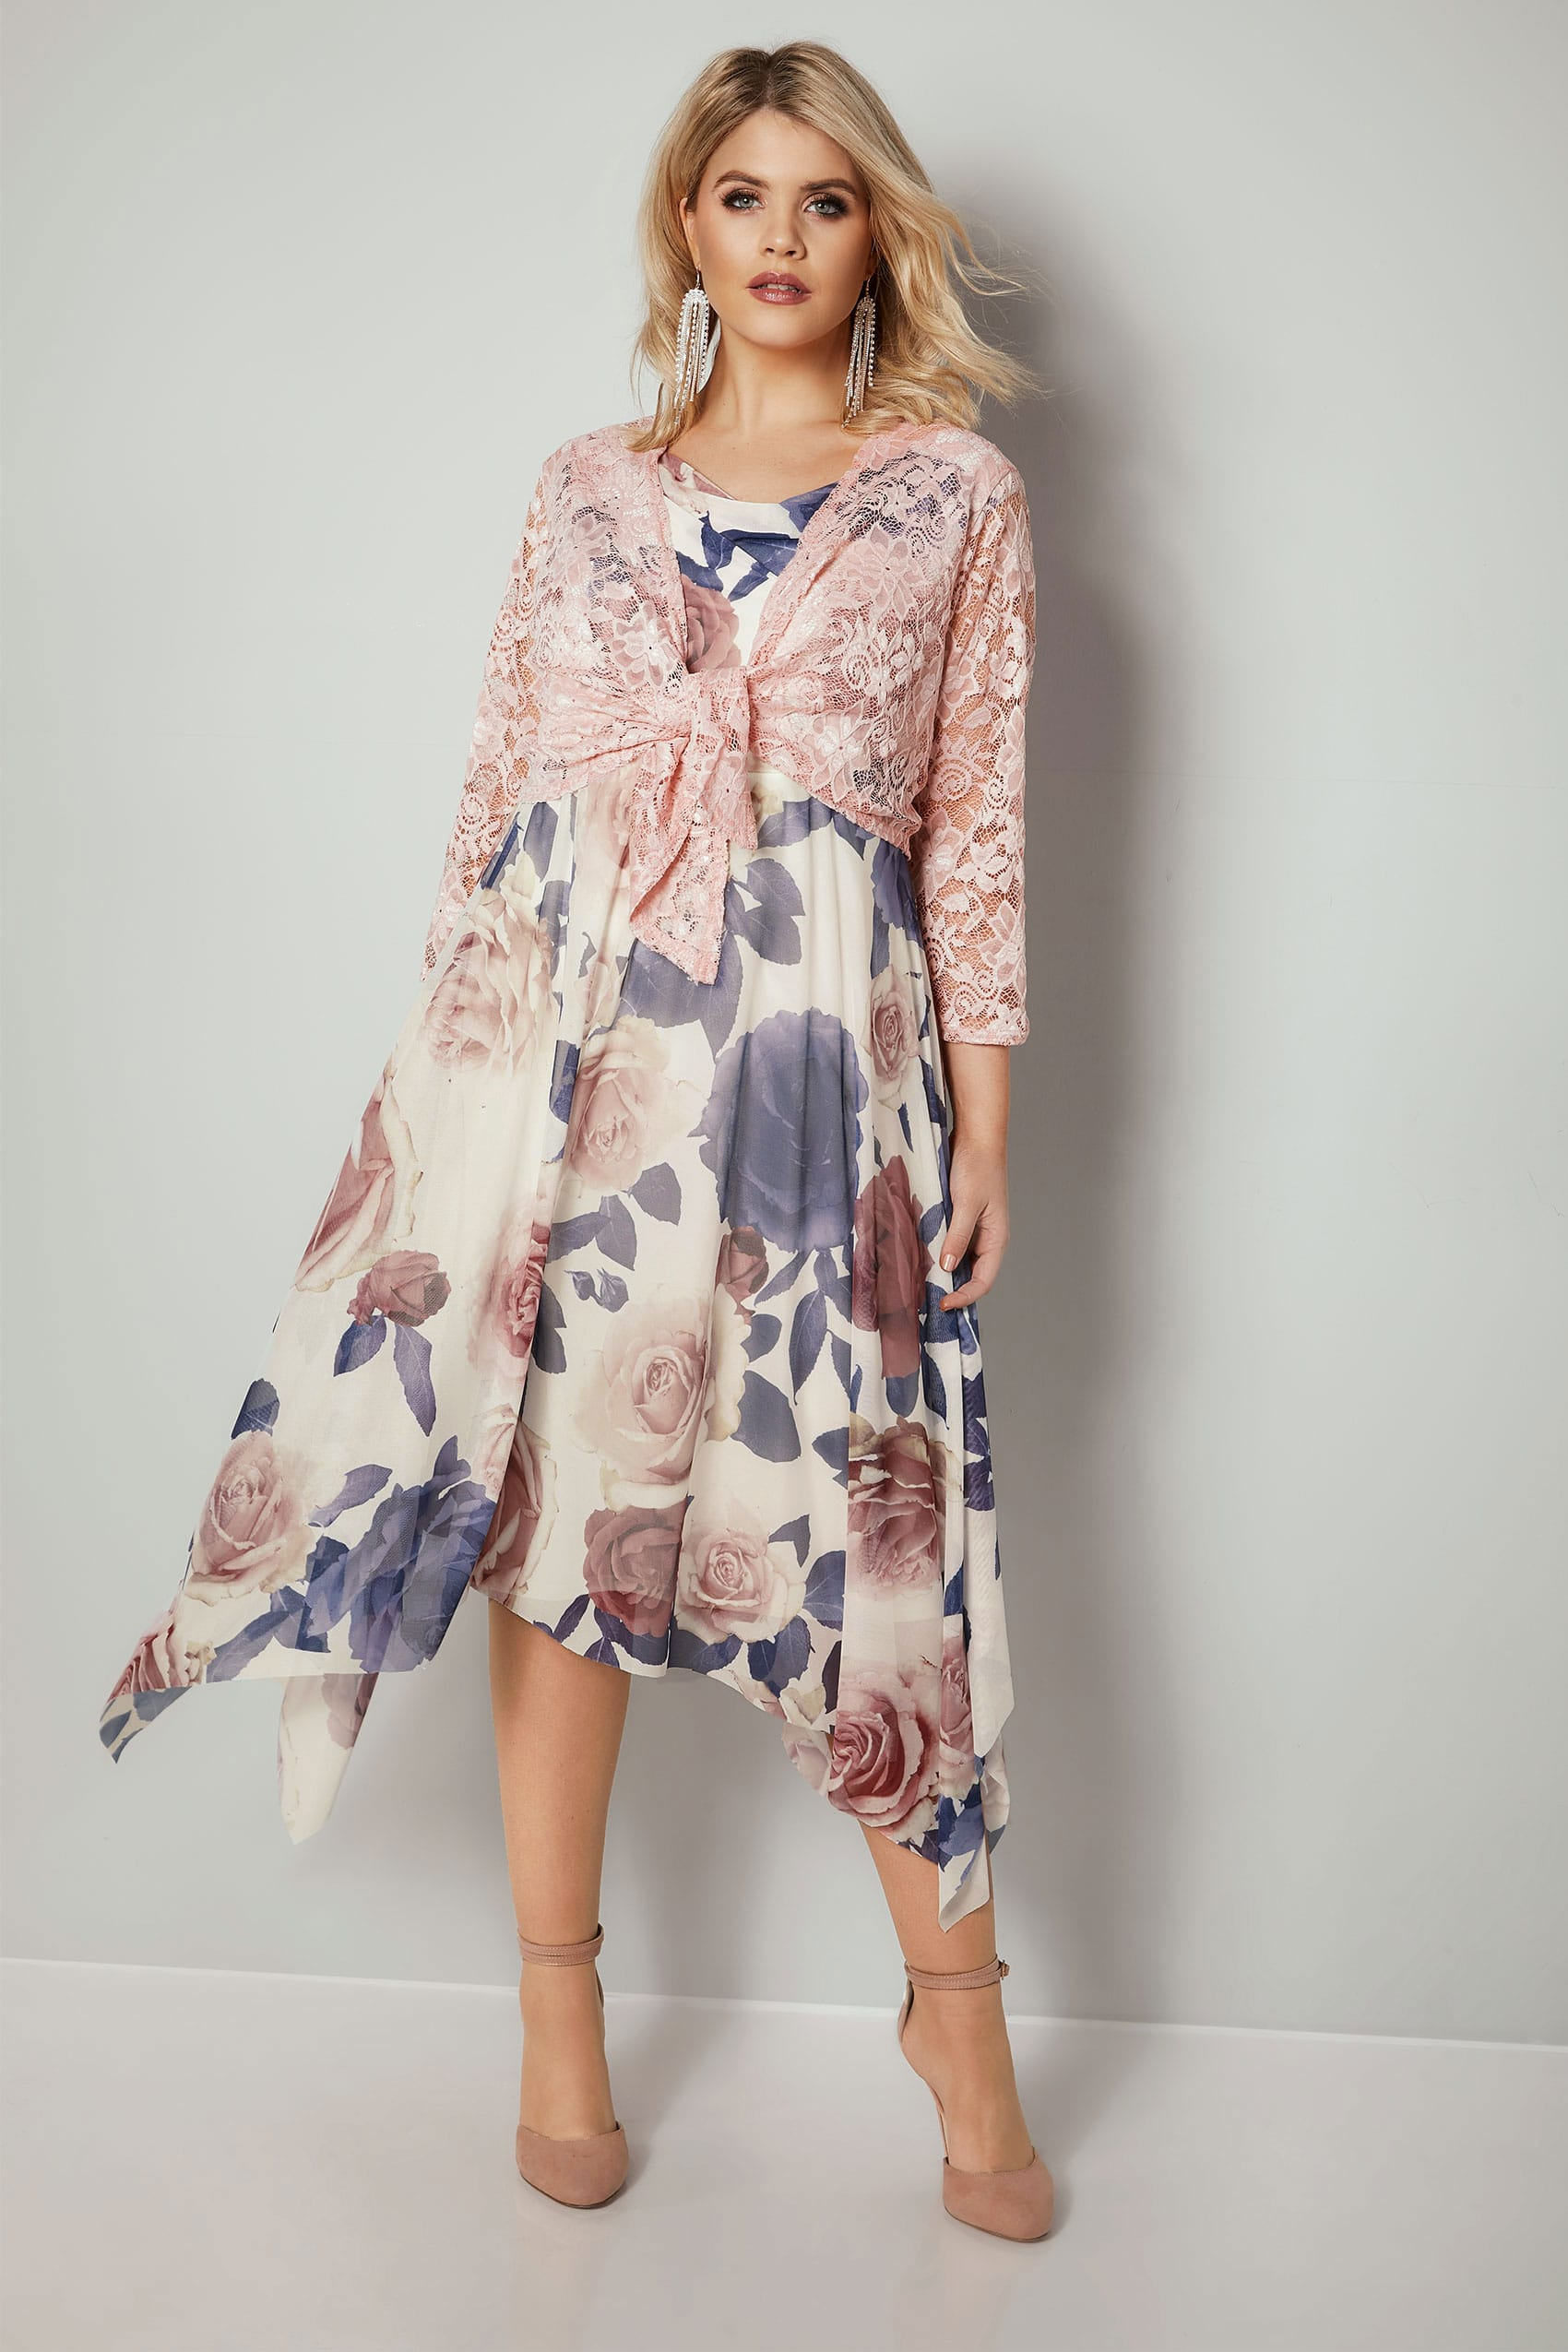 143 305 70httpswww Bing Commapsq Go To Www Bing Com Form Hdrsc4: YOURS LONDON Ivory & Multi Floral Print Midi Dress With